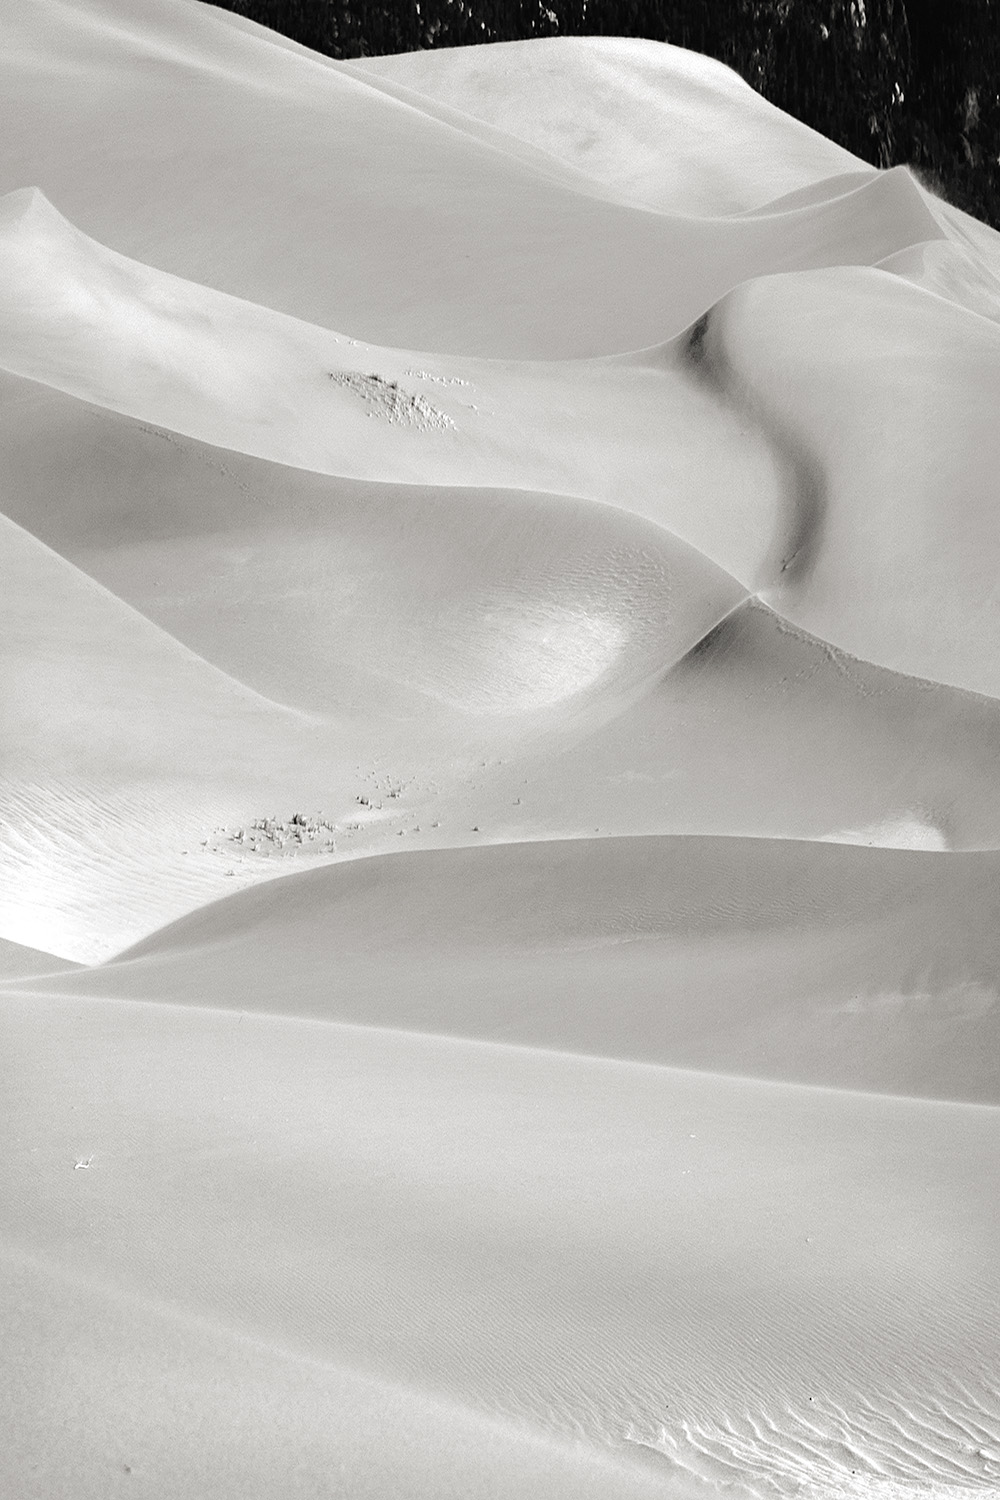 The Great Sand Dunes National Park, Colorado